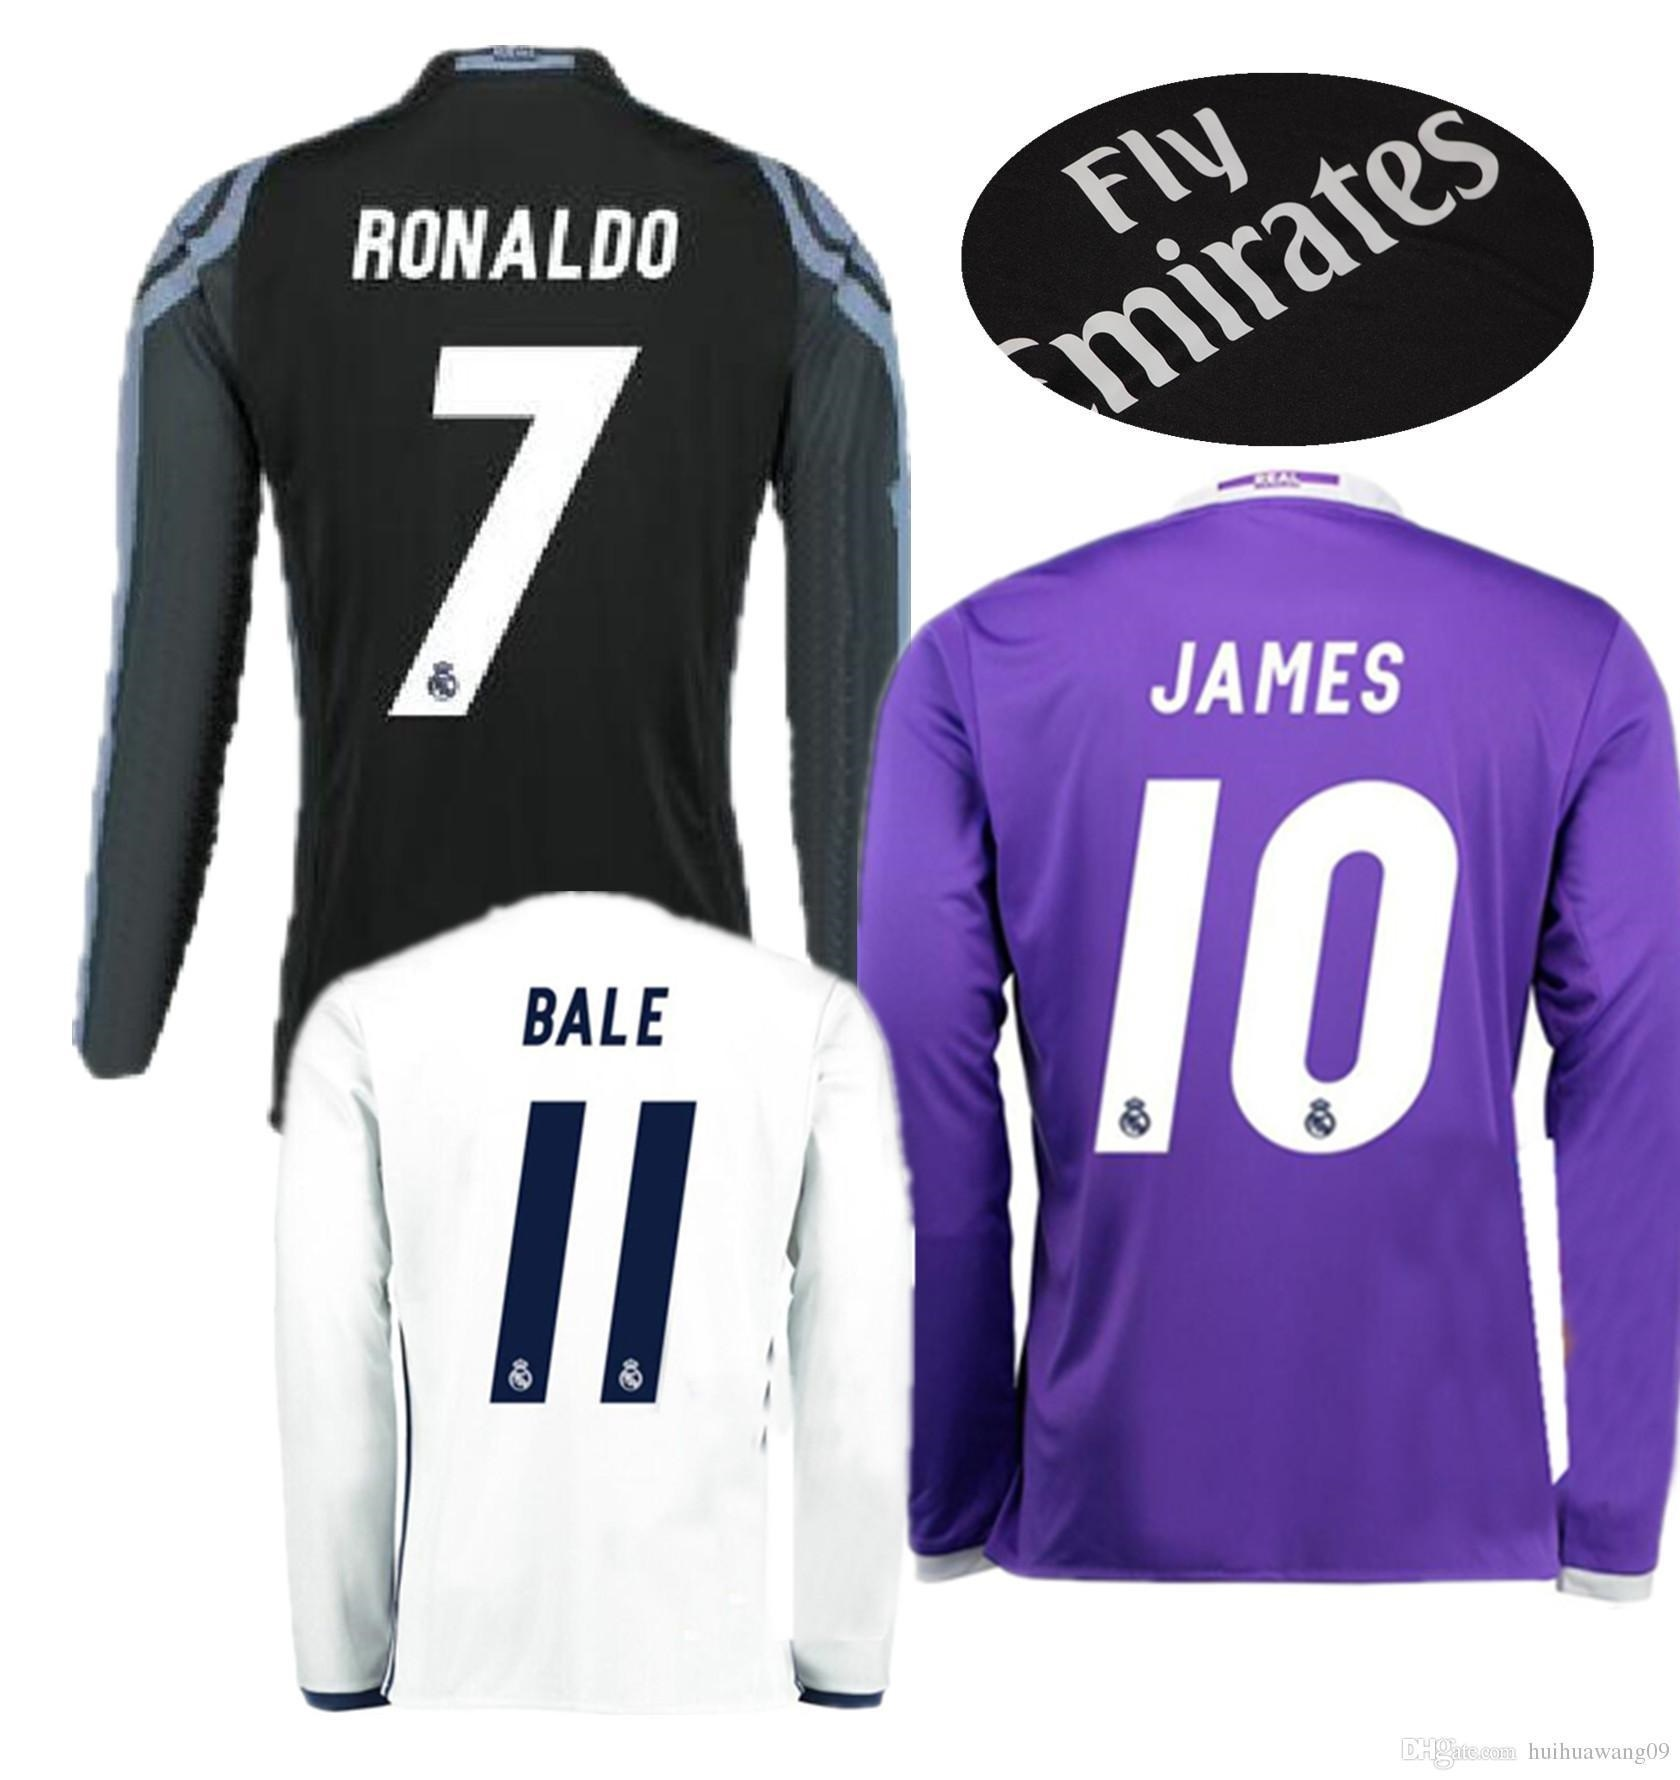 quality design 8169e 1aa16 2017 Long Third Black Real Madrid Soccer Jerseys Ronaldo Jerseys 16/17 Bale  James Kroos Sergio Ramos